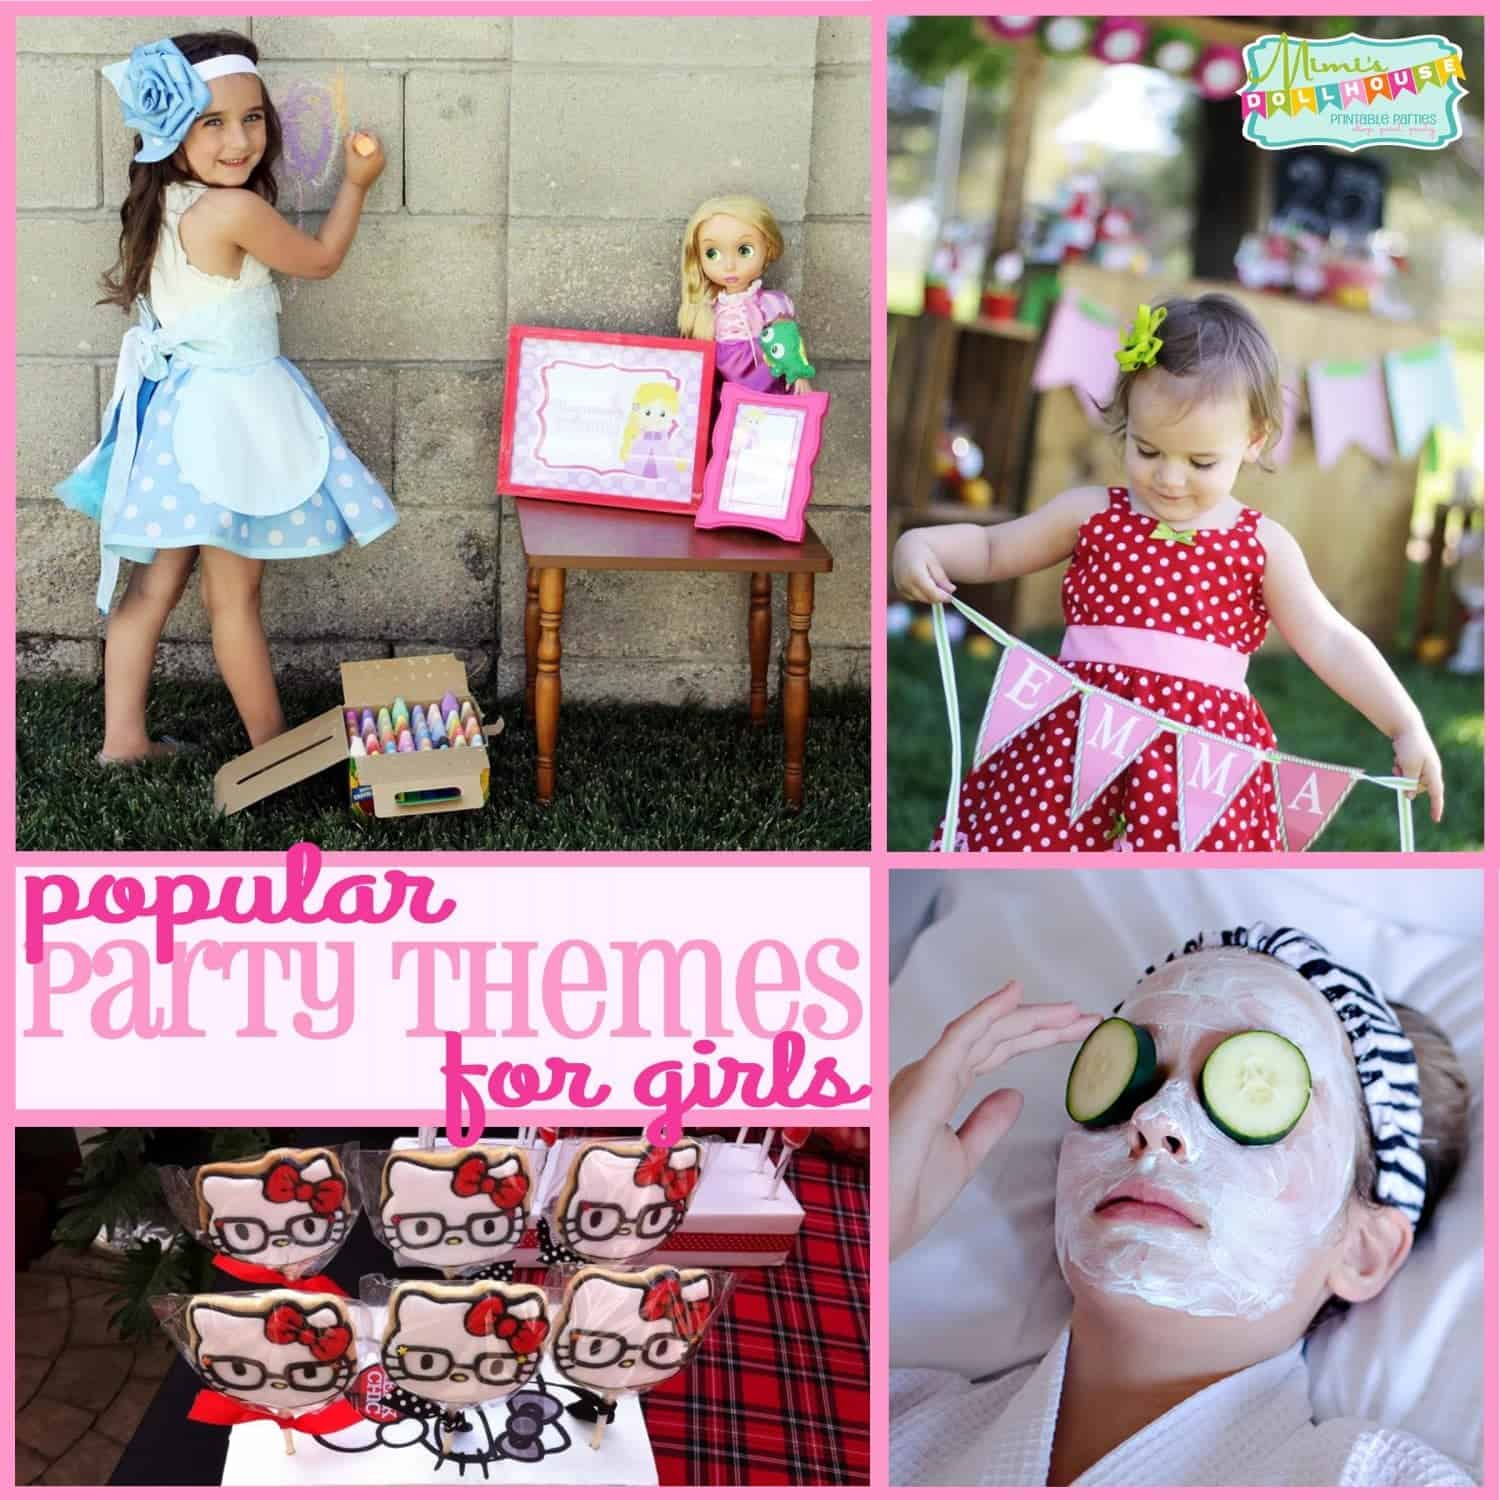 Trends: Popular Party Themes for Girls (Part 2)